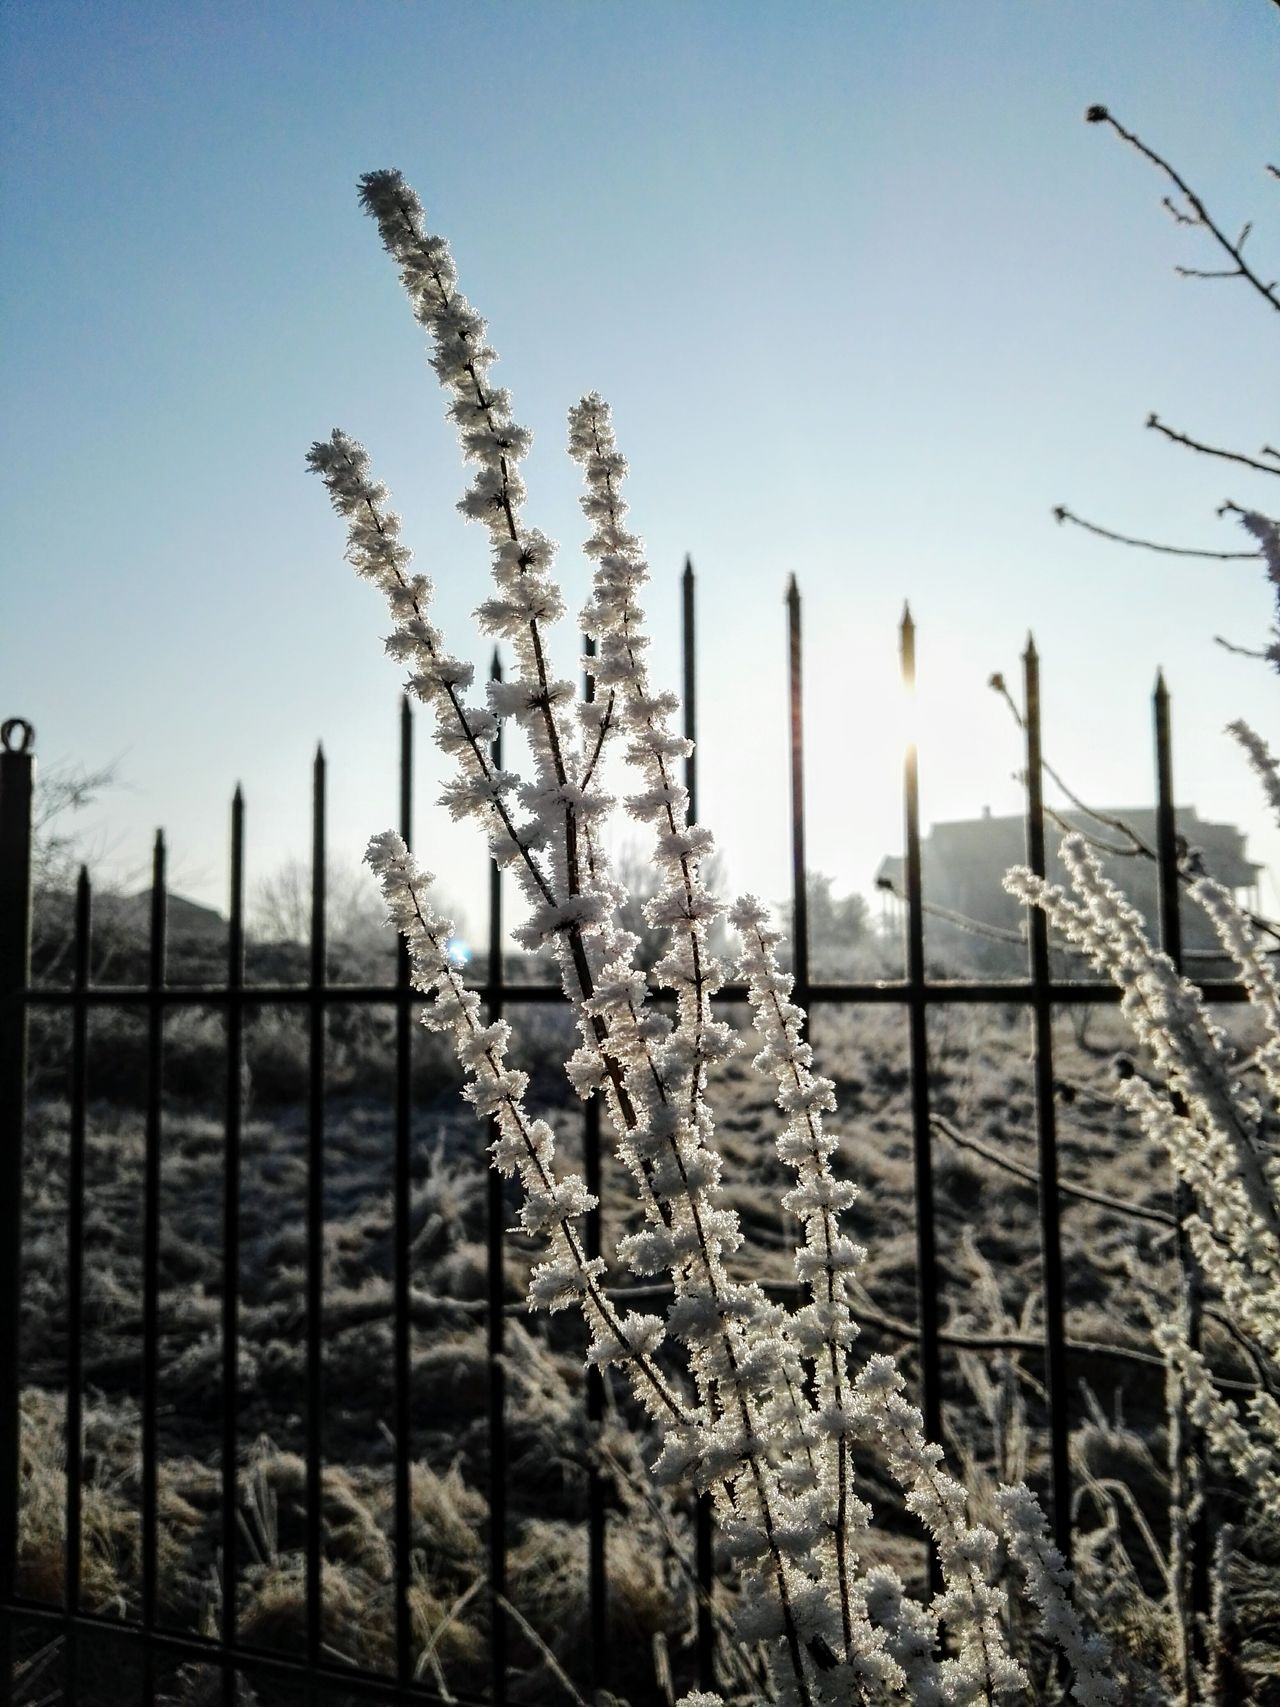 HuaweiP8 No People Outdoors NatureBeauty In Nature Tranquility Day Scenics Winter Cold Temperature Frosty Frosty Mornings Frosty Days Cold Days Sunrise Workplace